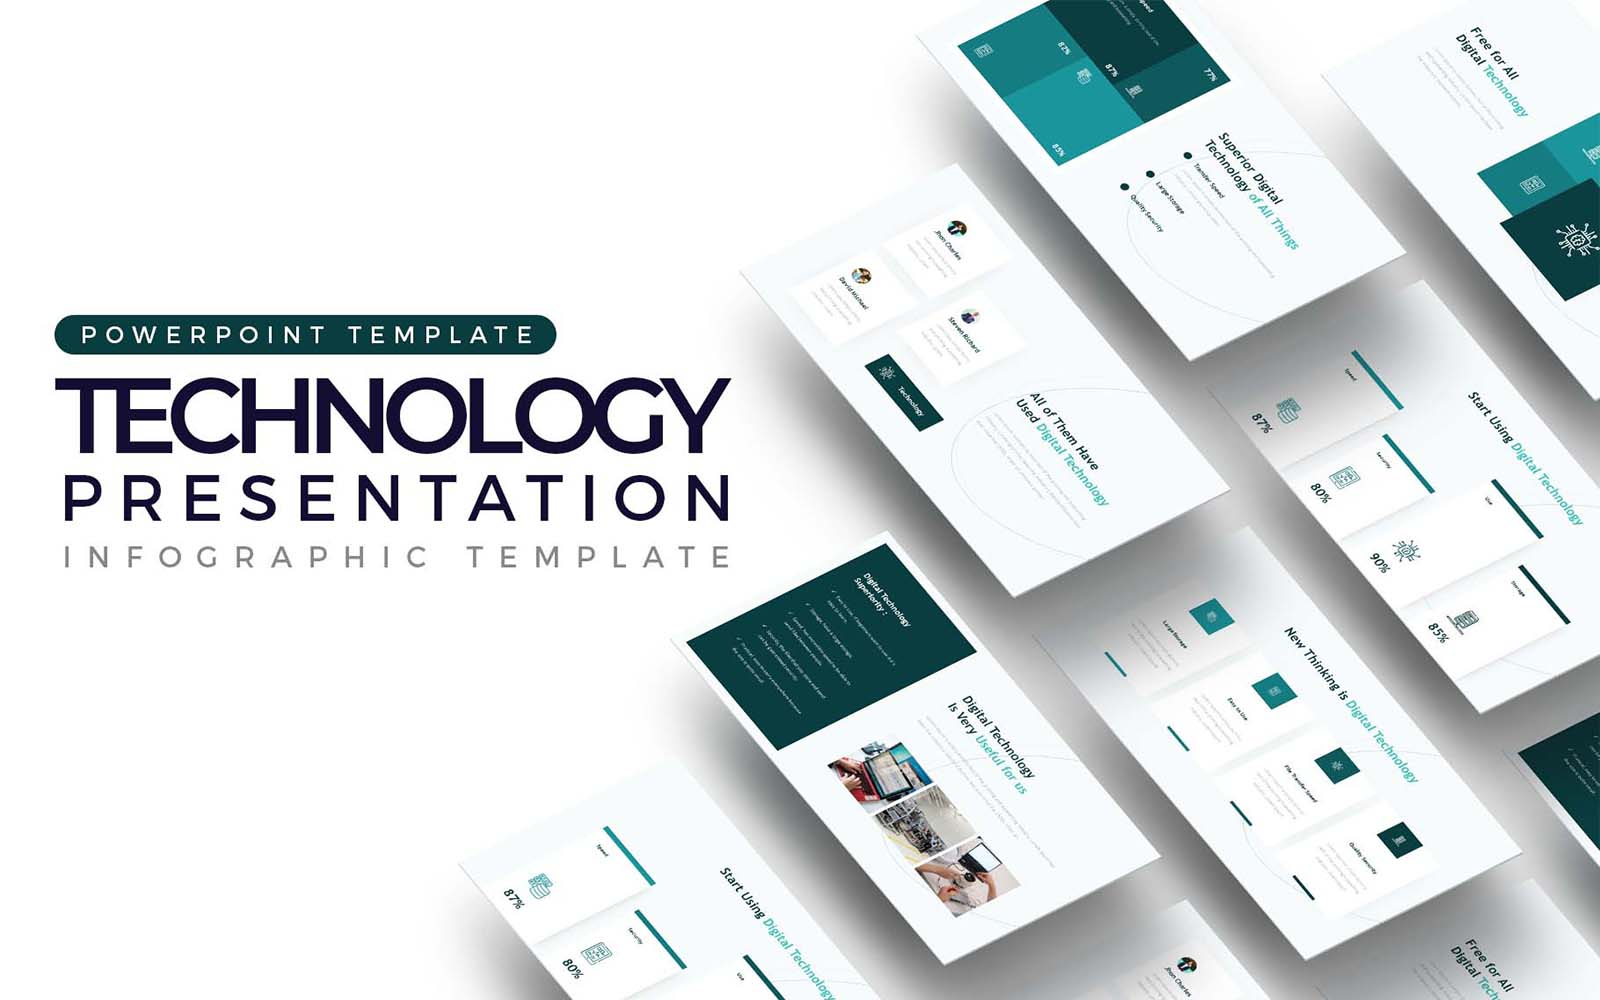 Technology Presentation PowerPoint Template